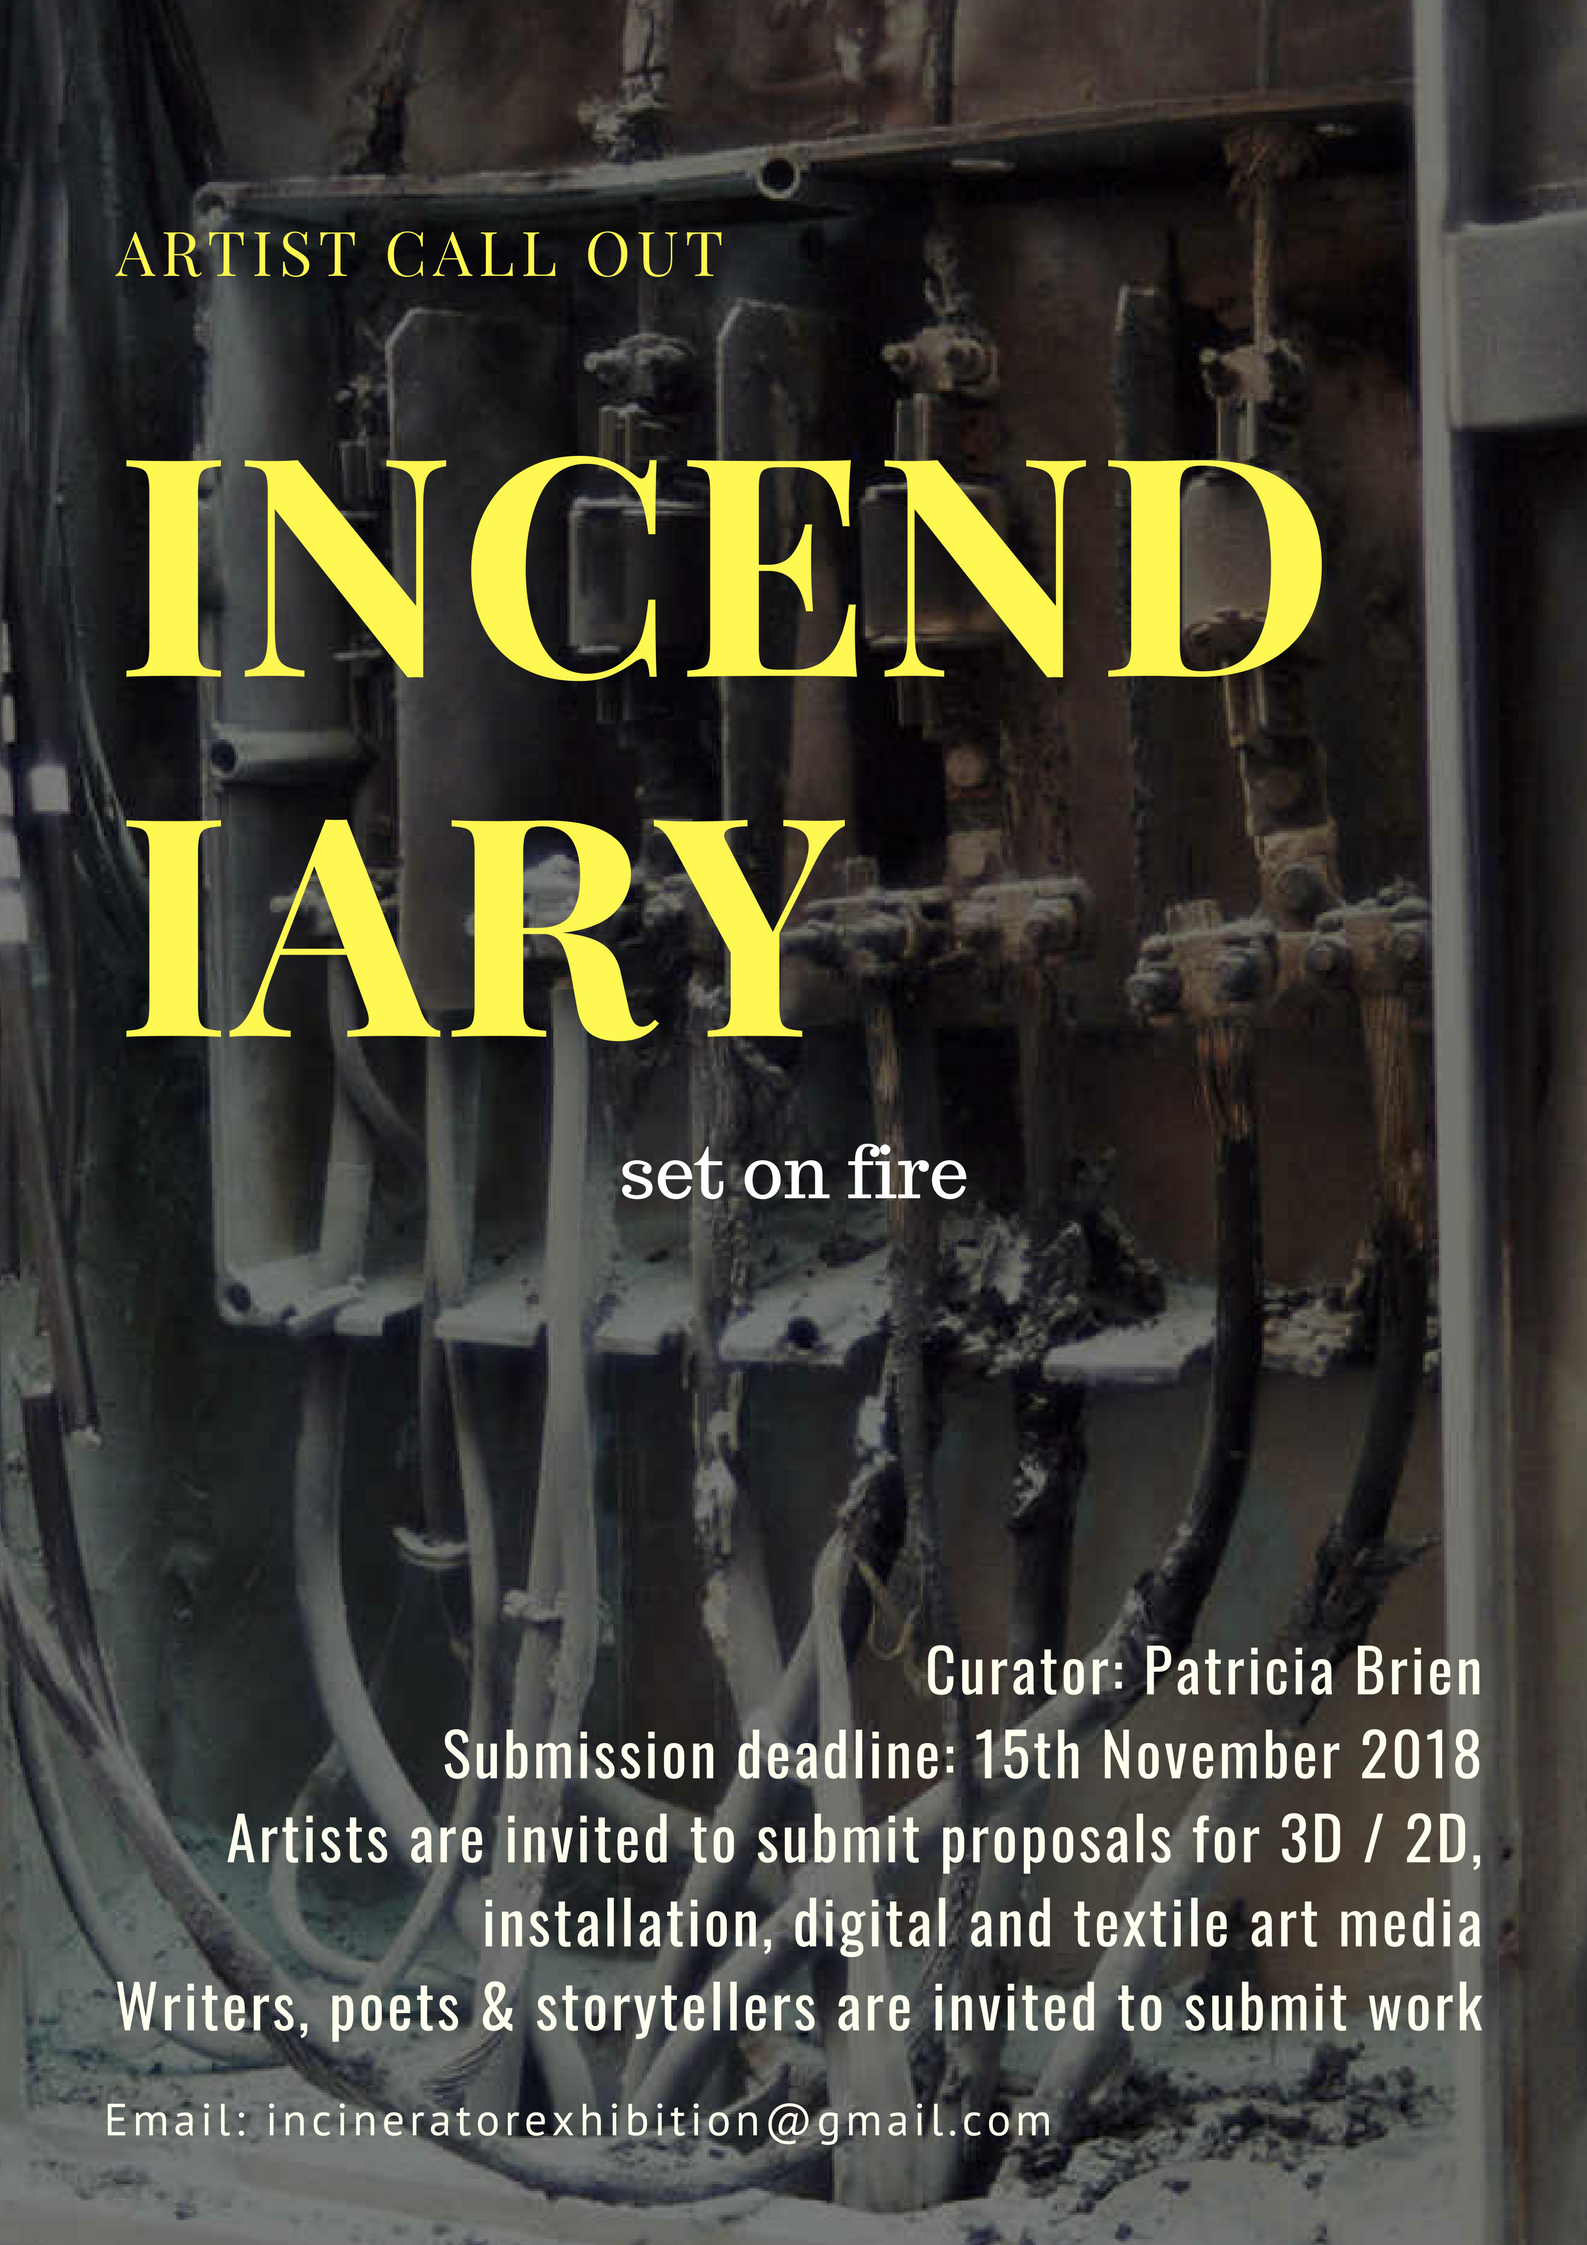 Call Out for artist response to Incinerators, fire, regeneration, pollution, airborne toxicity